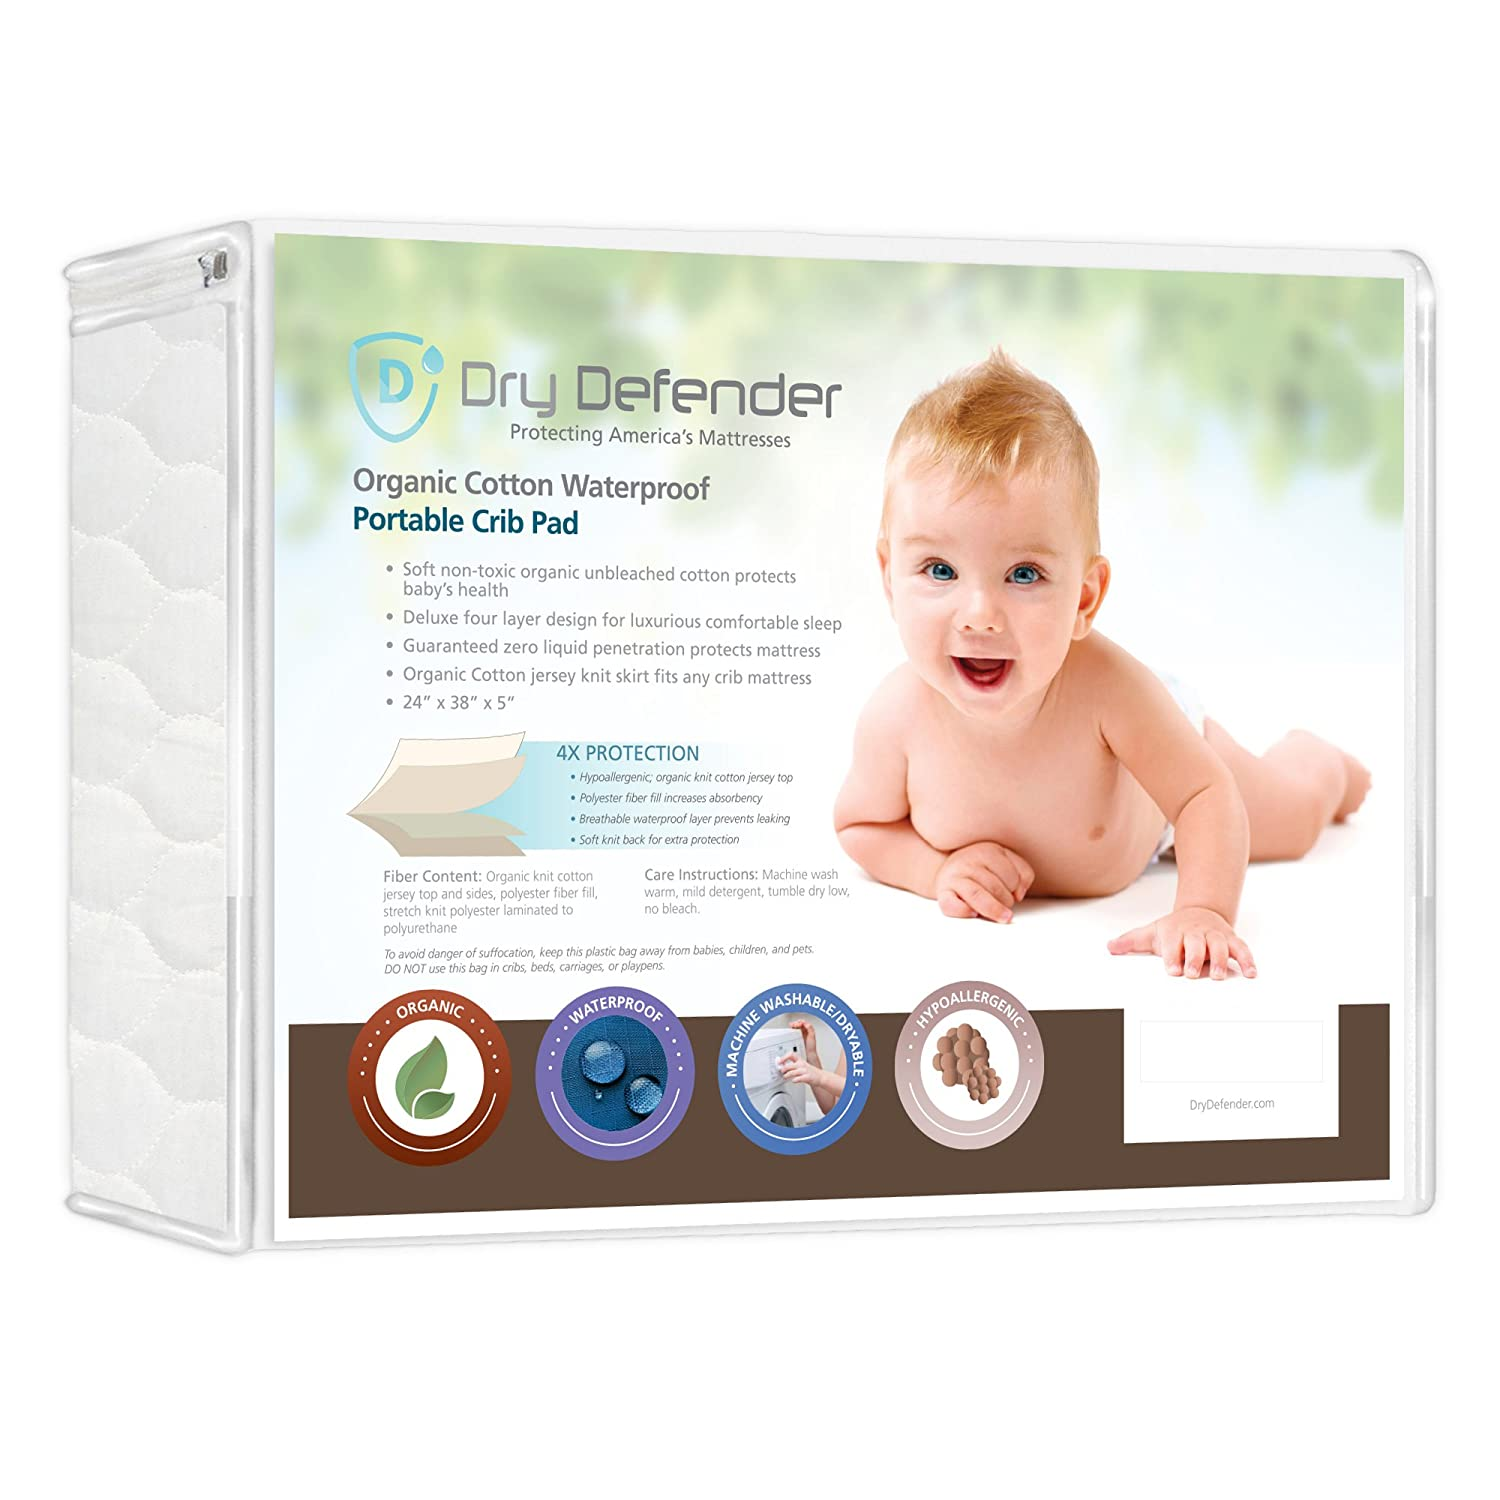 Organic Cotton Waterproof Fitted Crib Pad - Natural Baby Crib Mattress Cover & Protector - Unbleached, Non-Toxic & Hypoallergenic (28